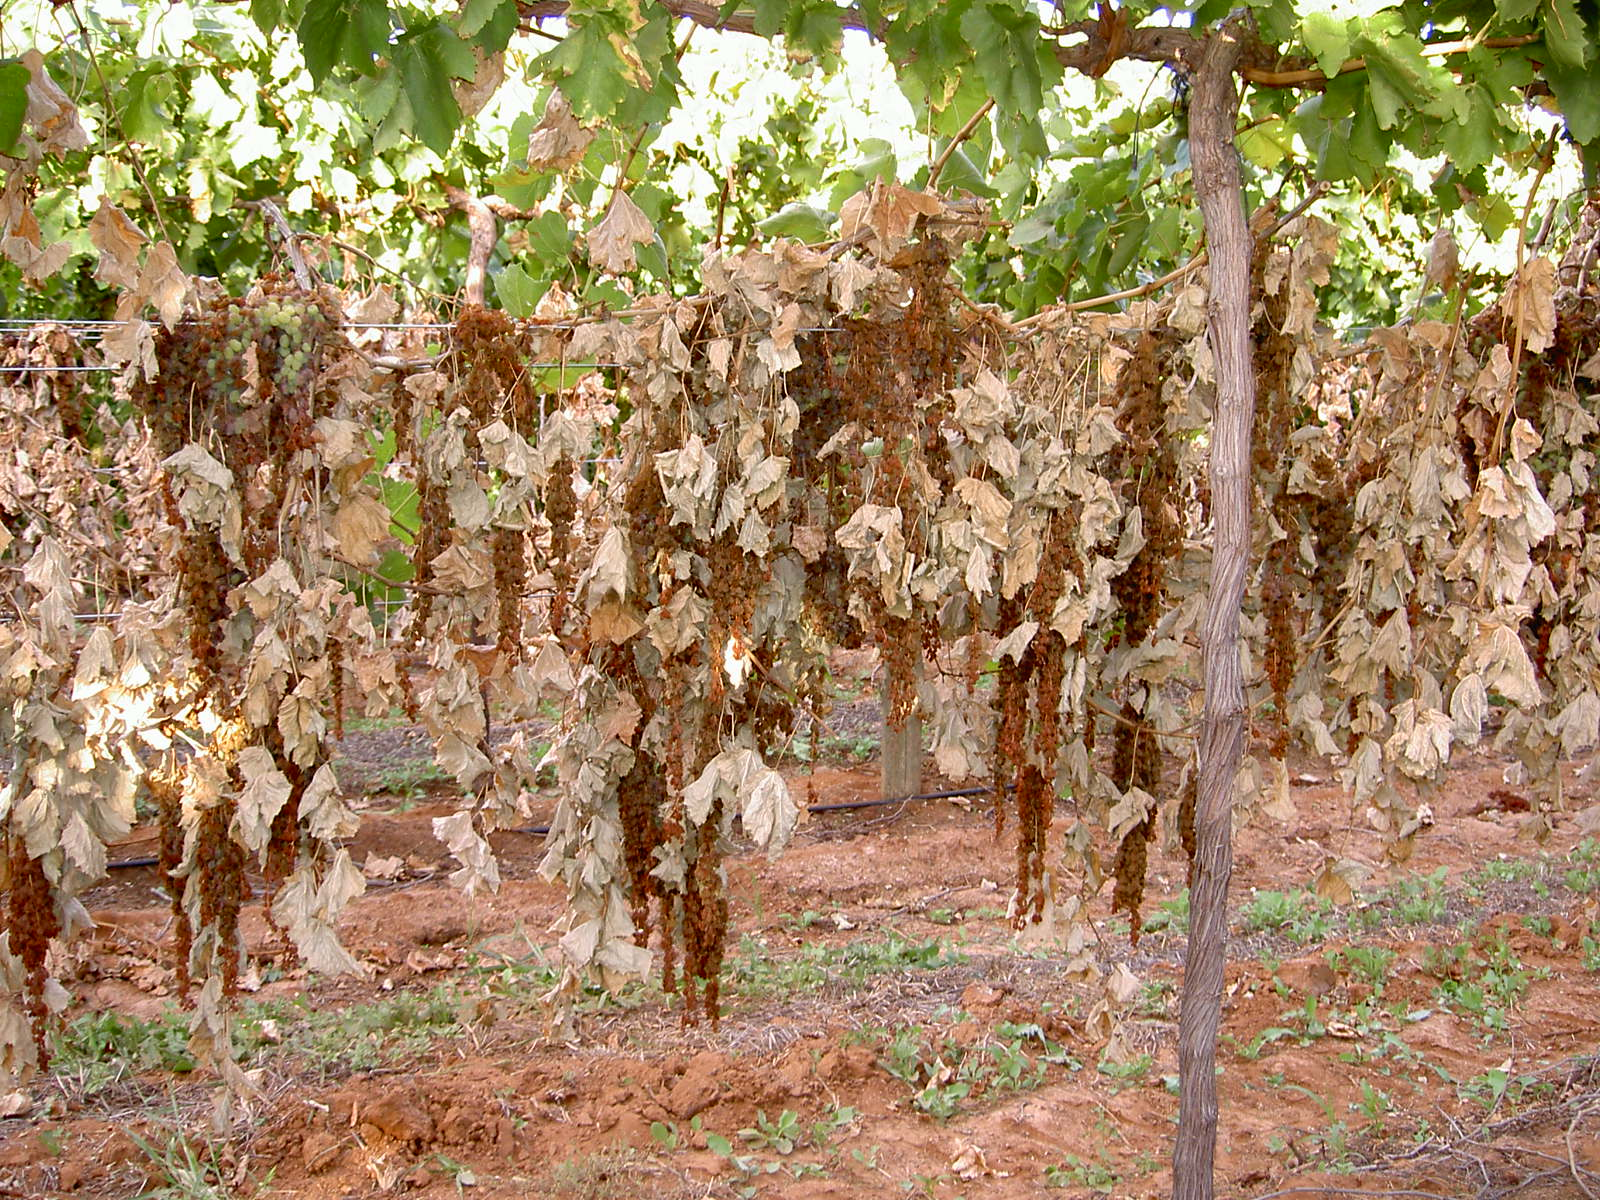 Drying on the vine